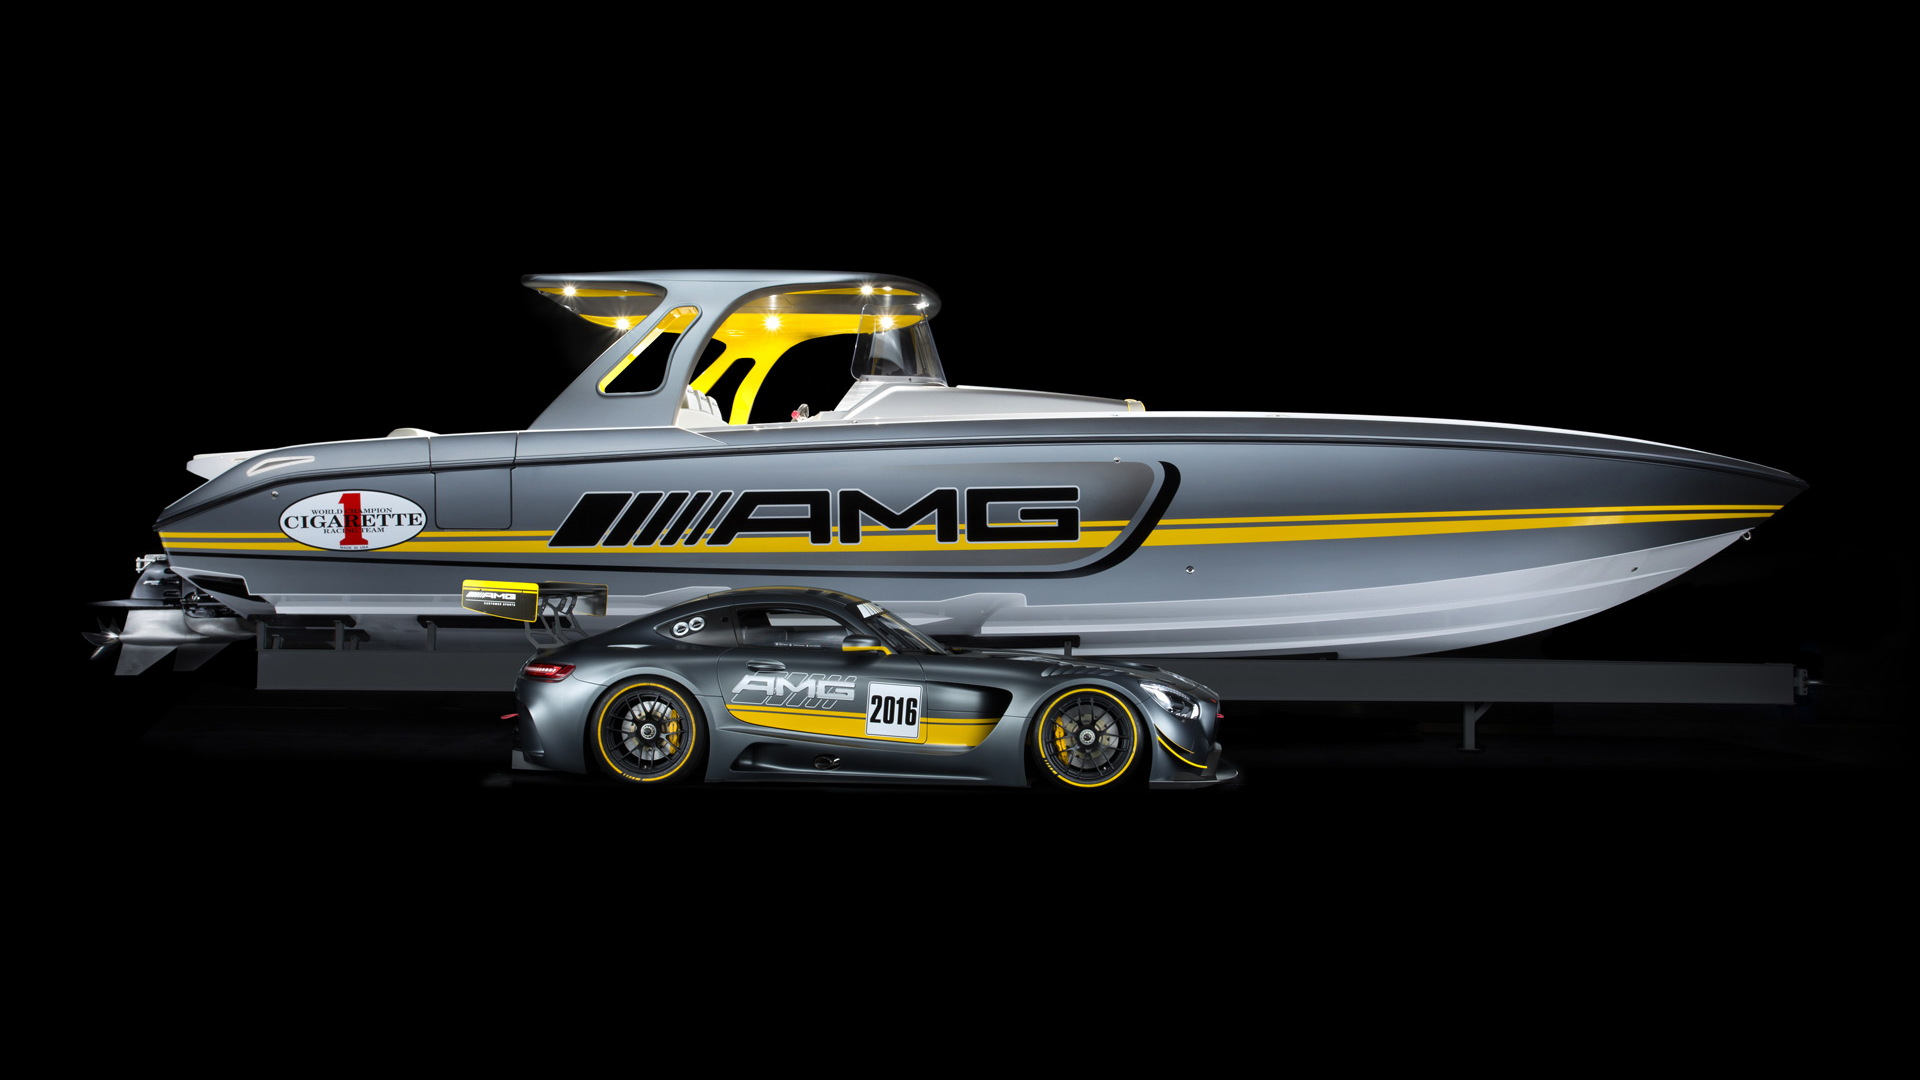 Cigarette Racing 41' SD GT3 boat and 2016 Mercedes-AMG GT3 race car